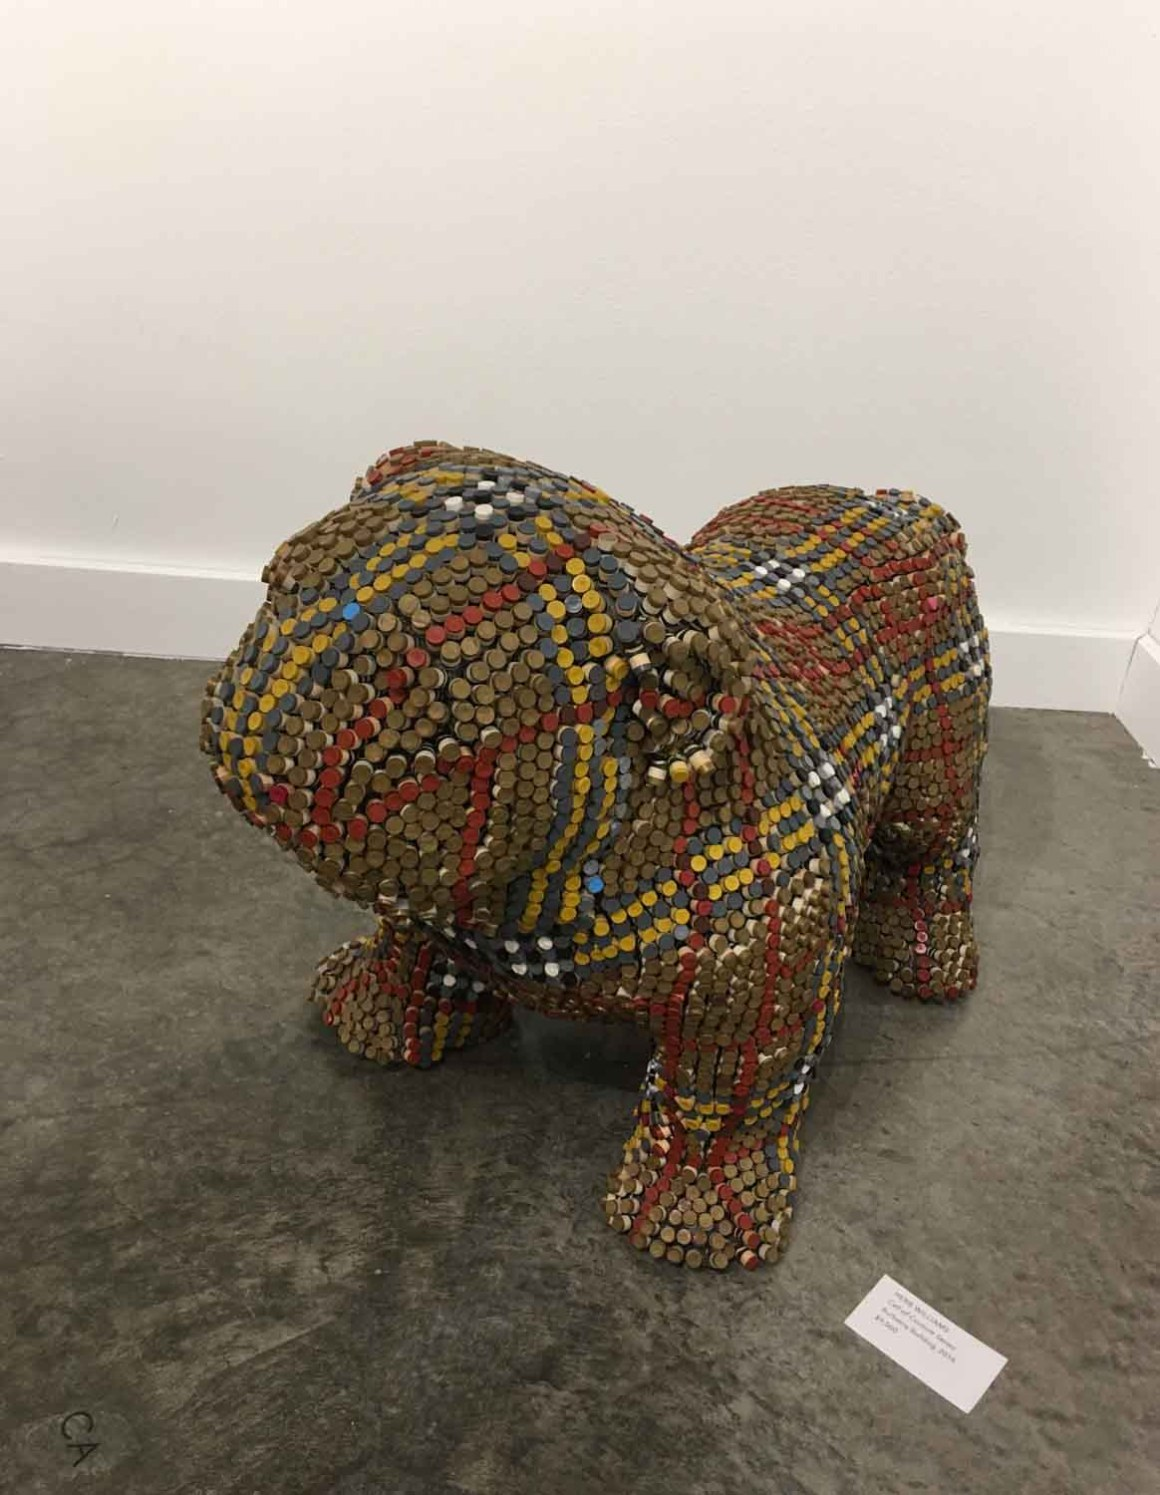 Art Basel Dog NADA